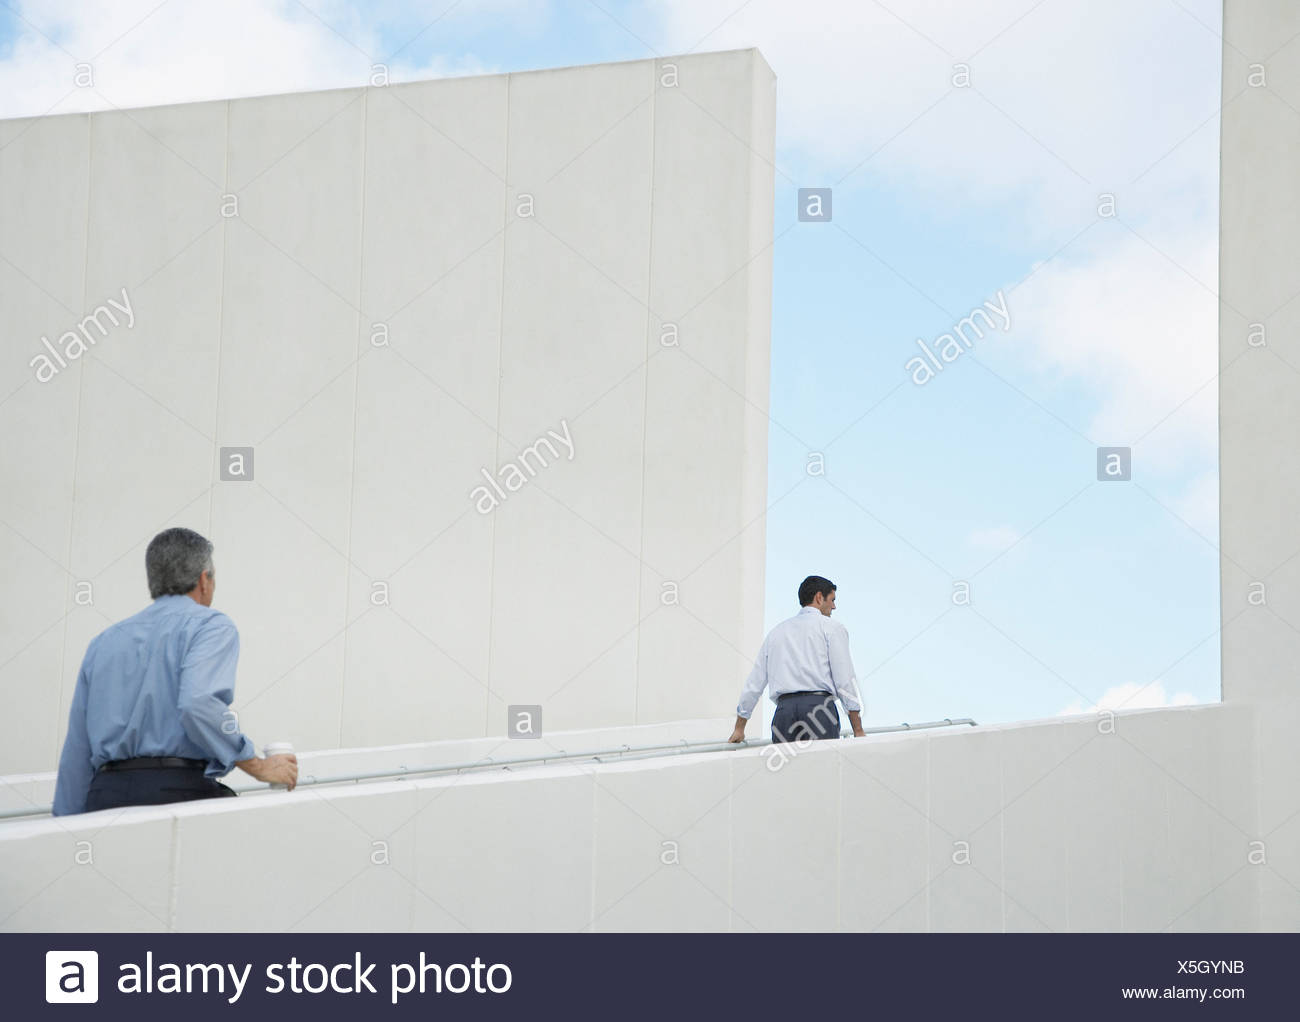 Two businessmen walking up an outdoor staircase Stock Photo